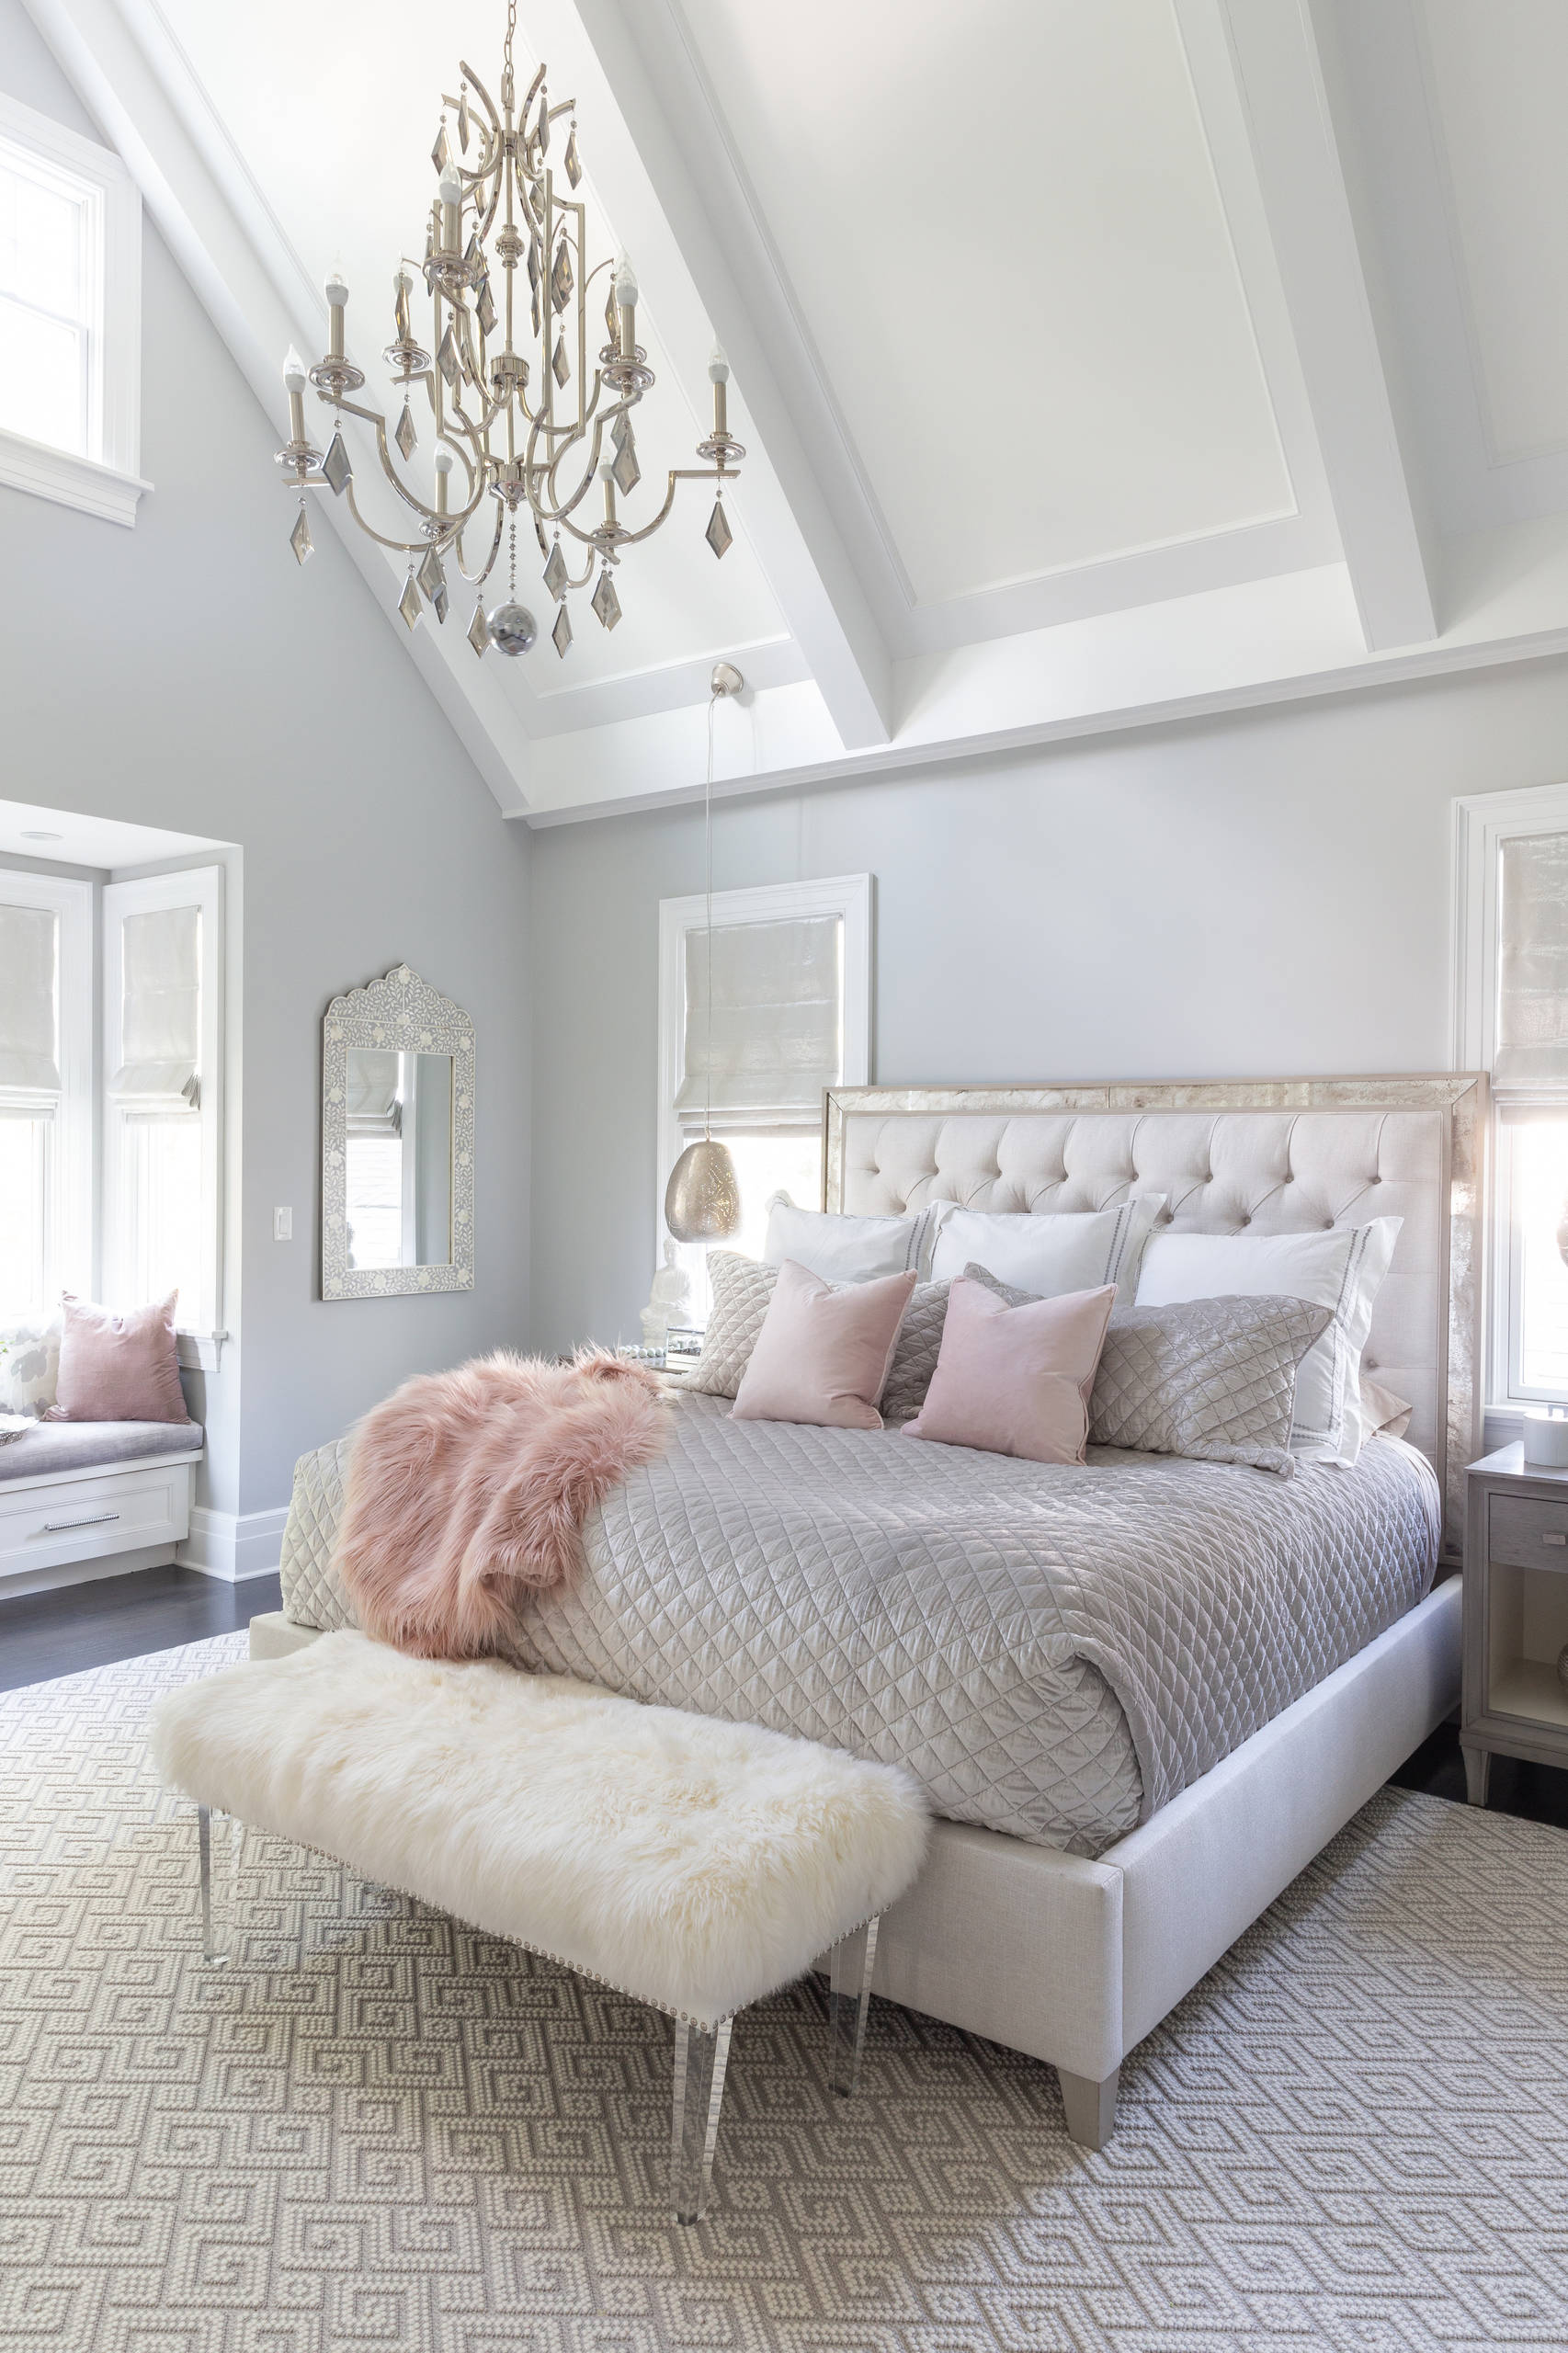 75 Beautiful Small Bedroom Pictures Ideas February 2021 Houzz